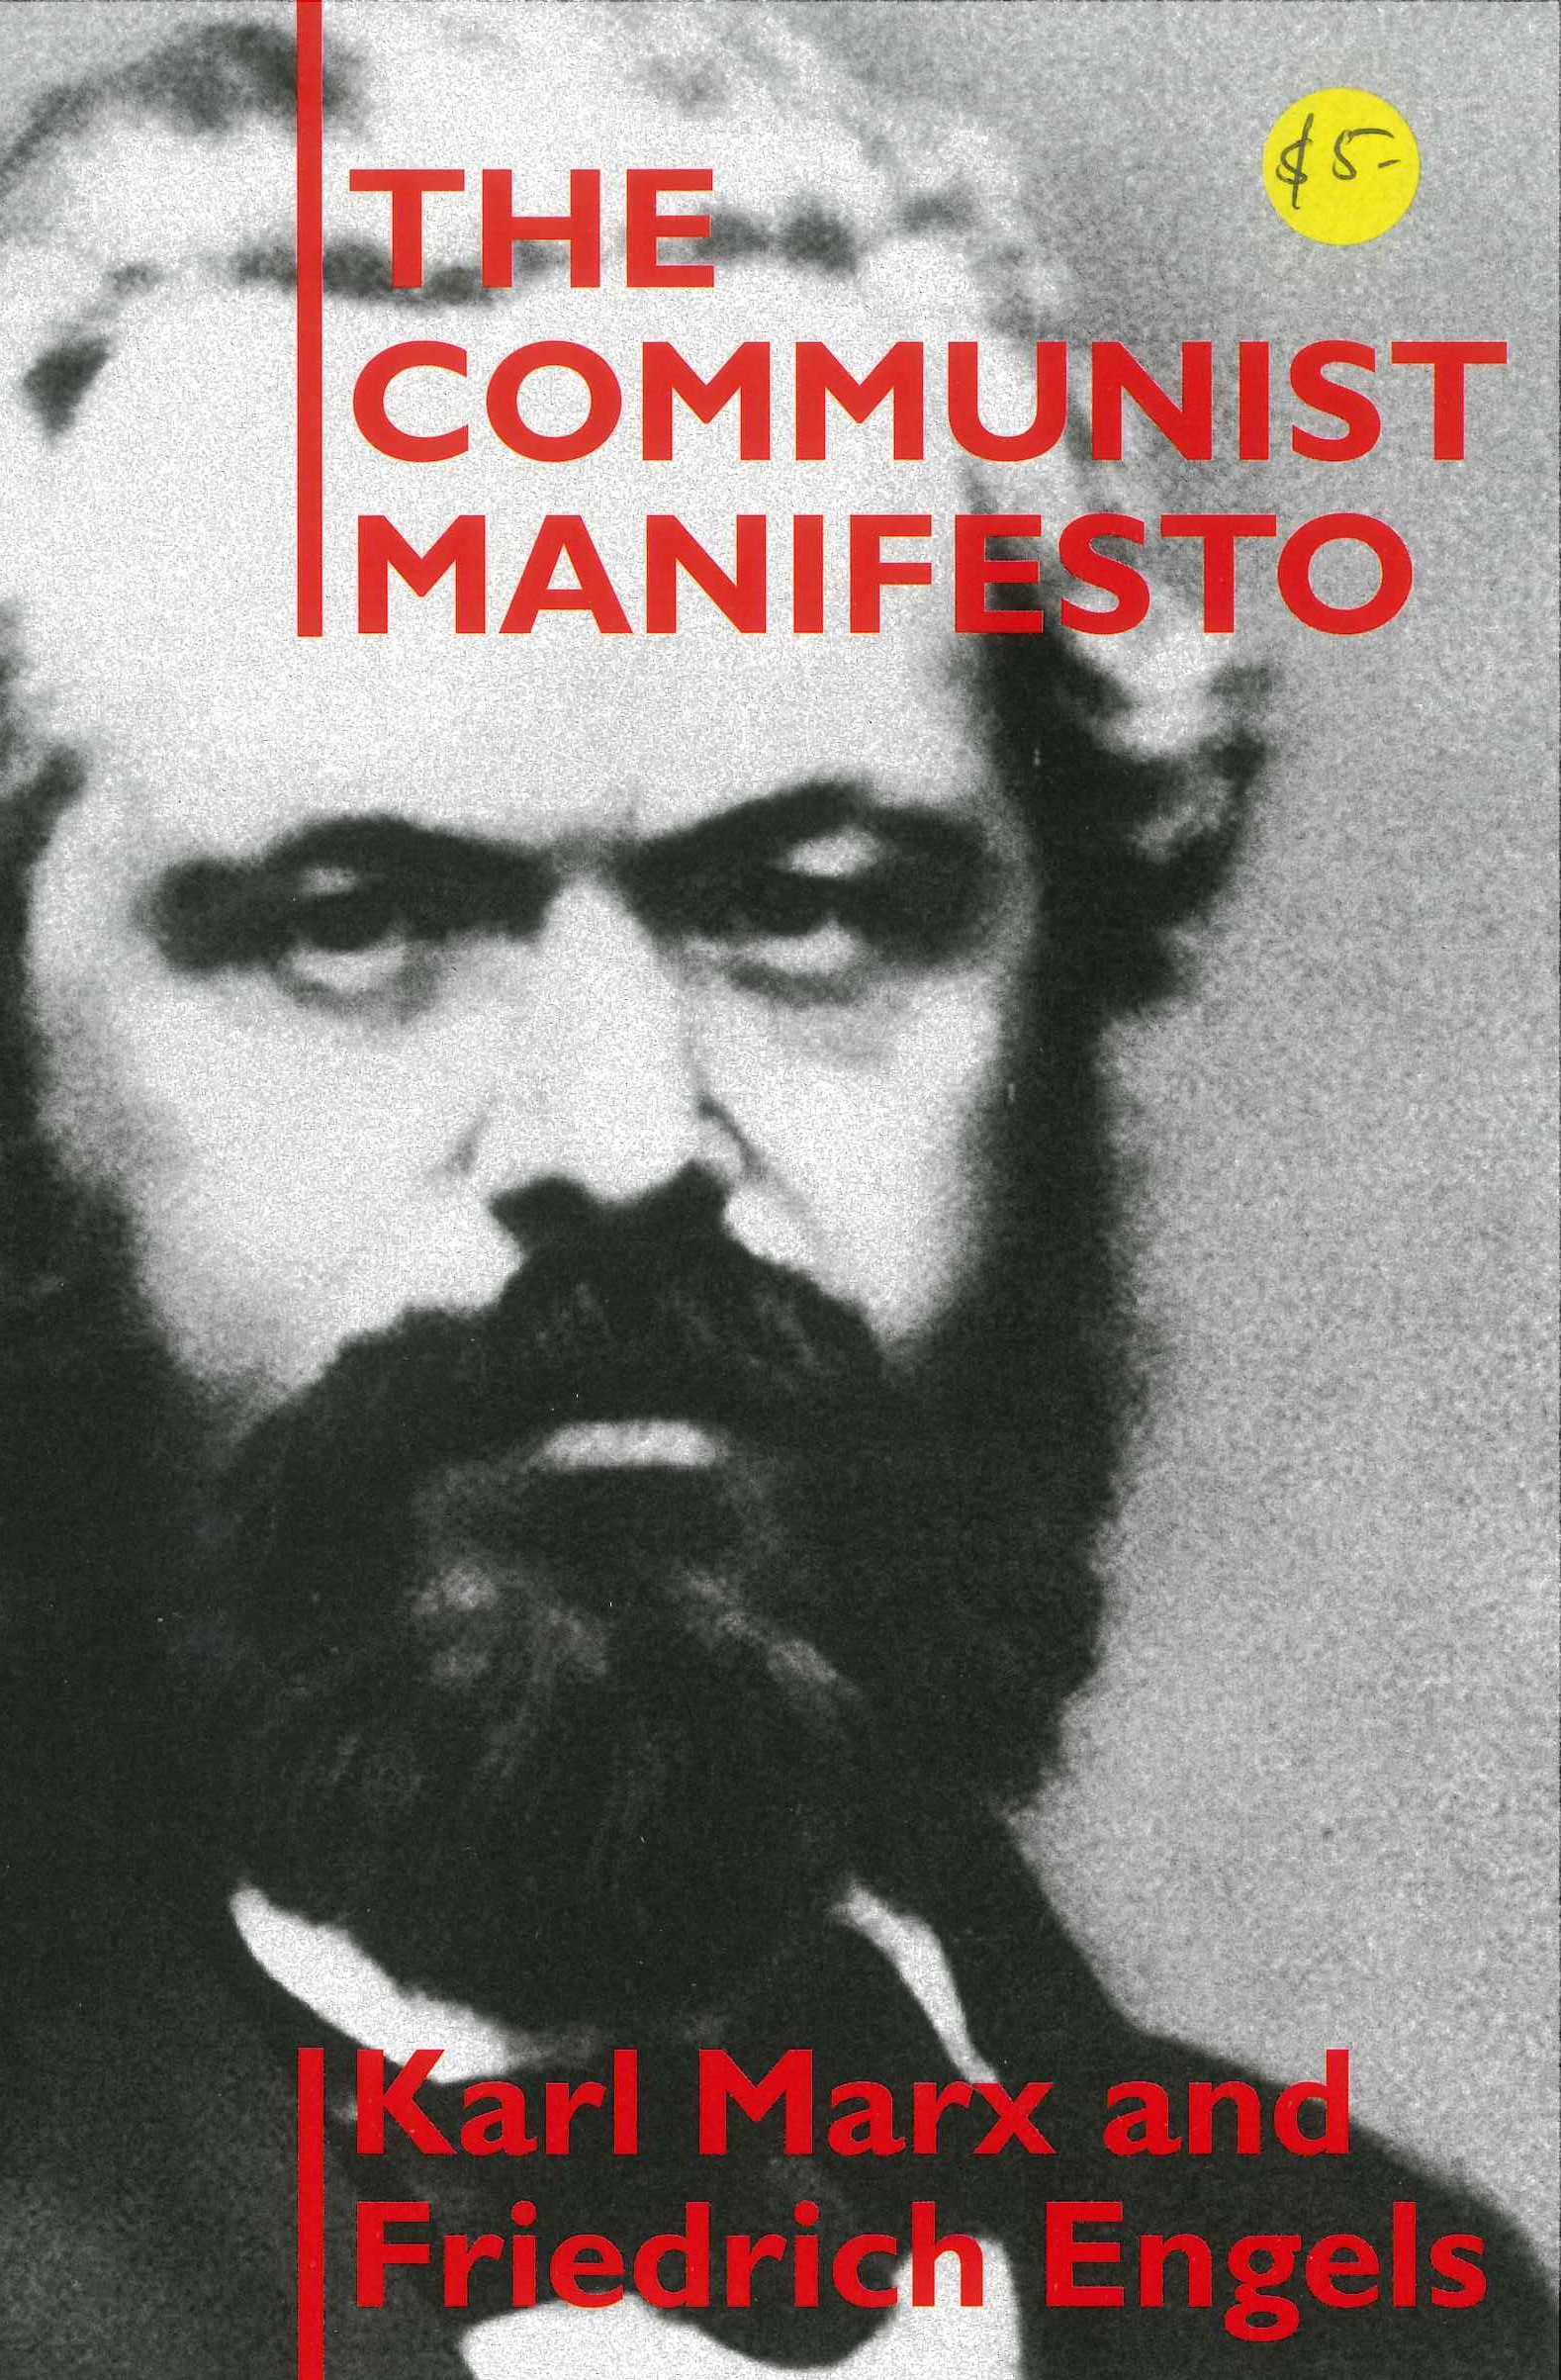 the history and meaning of marx and engels communist manifesto